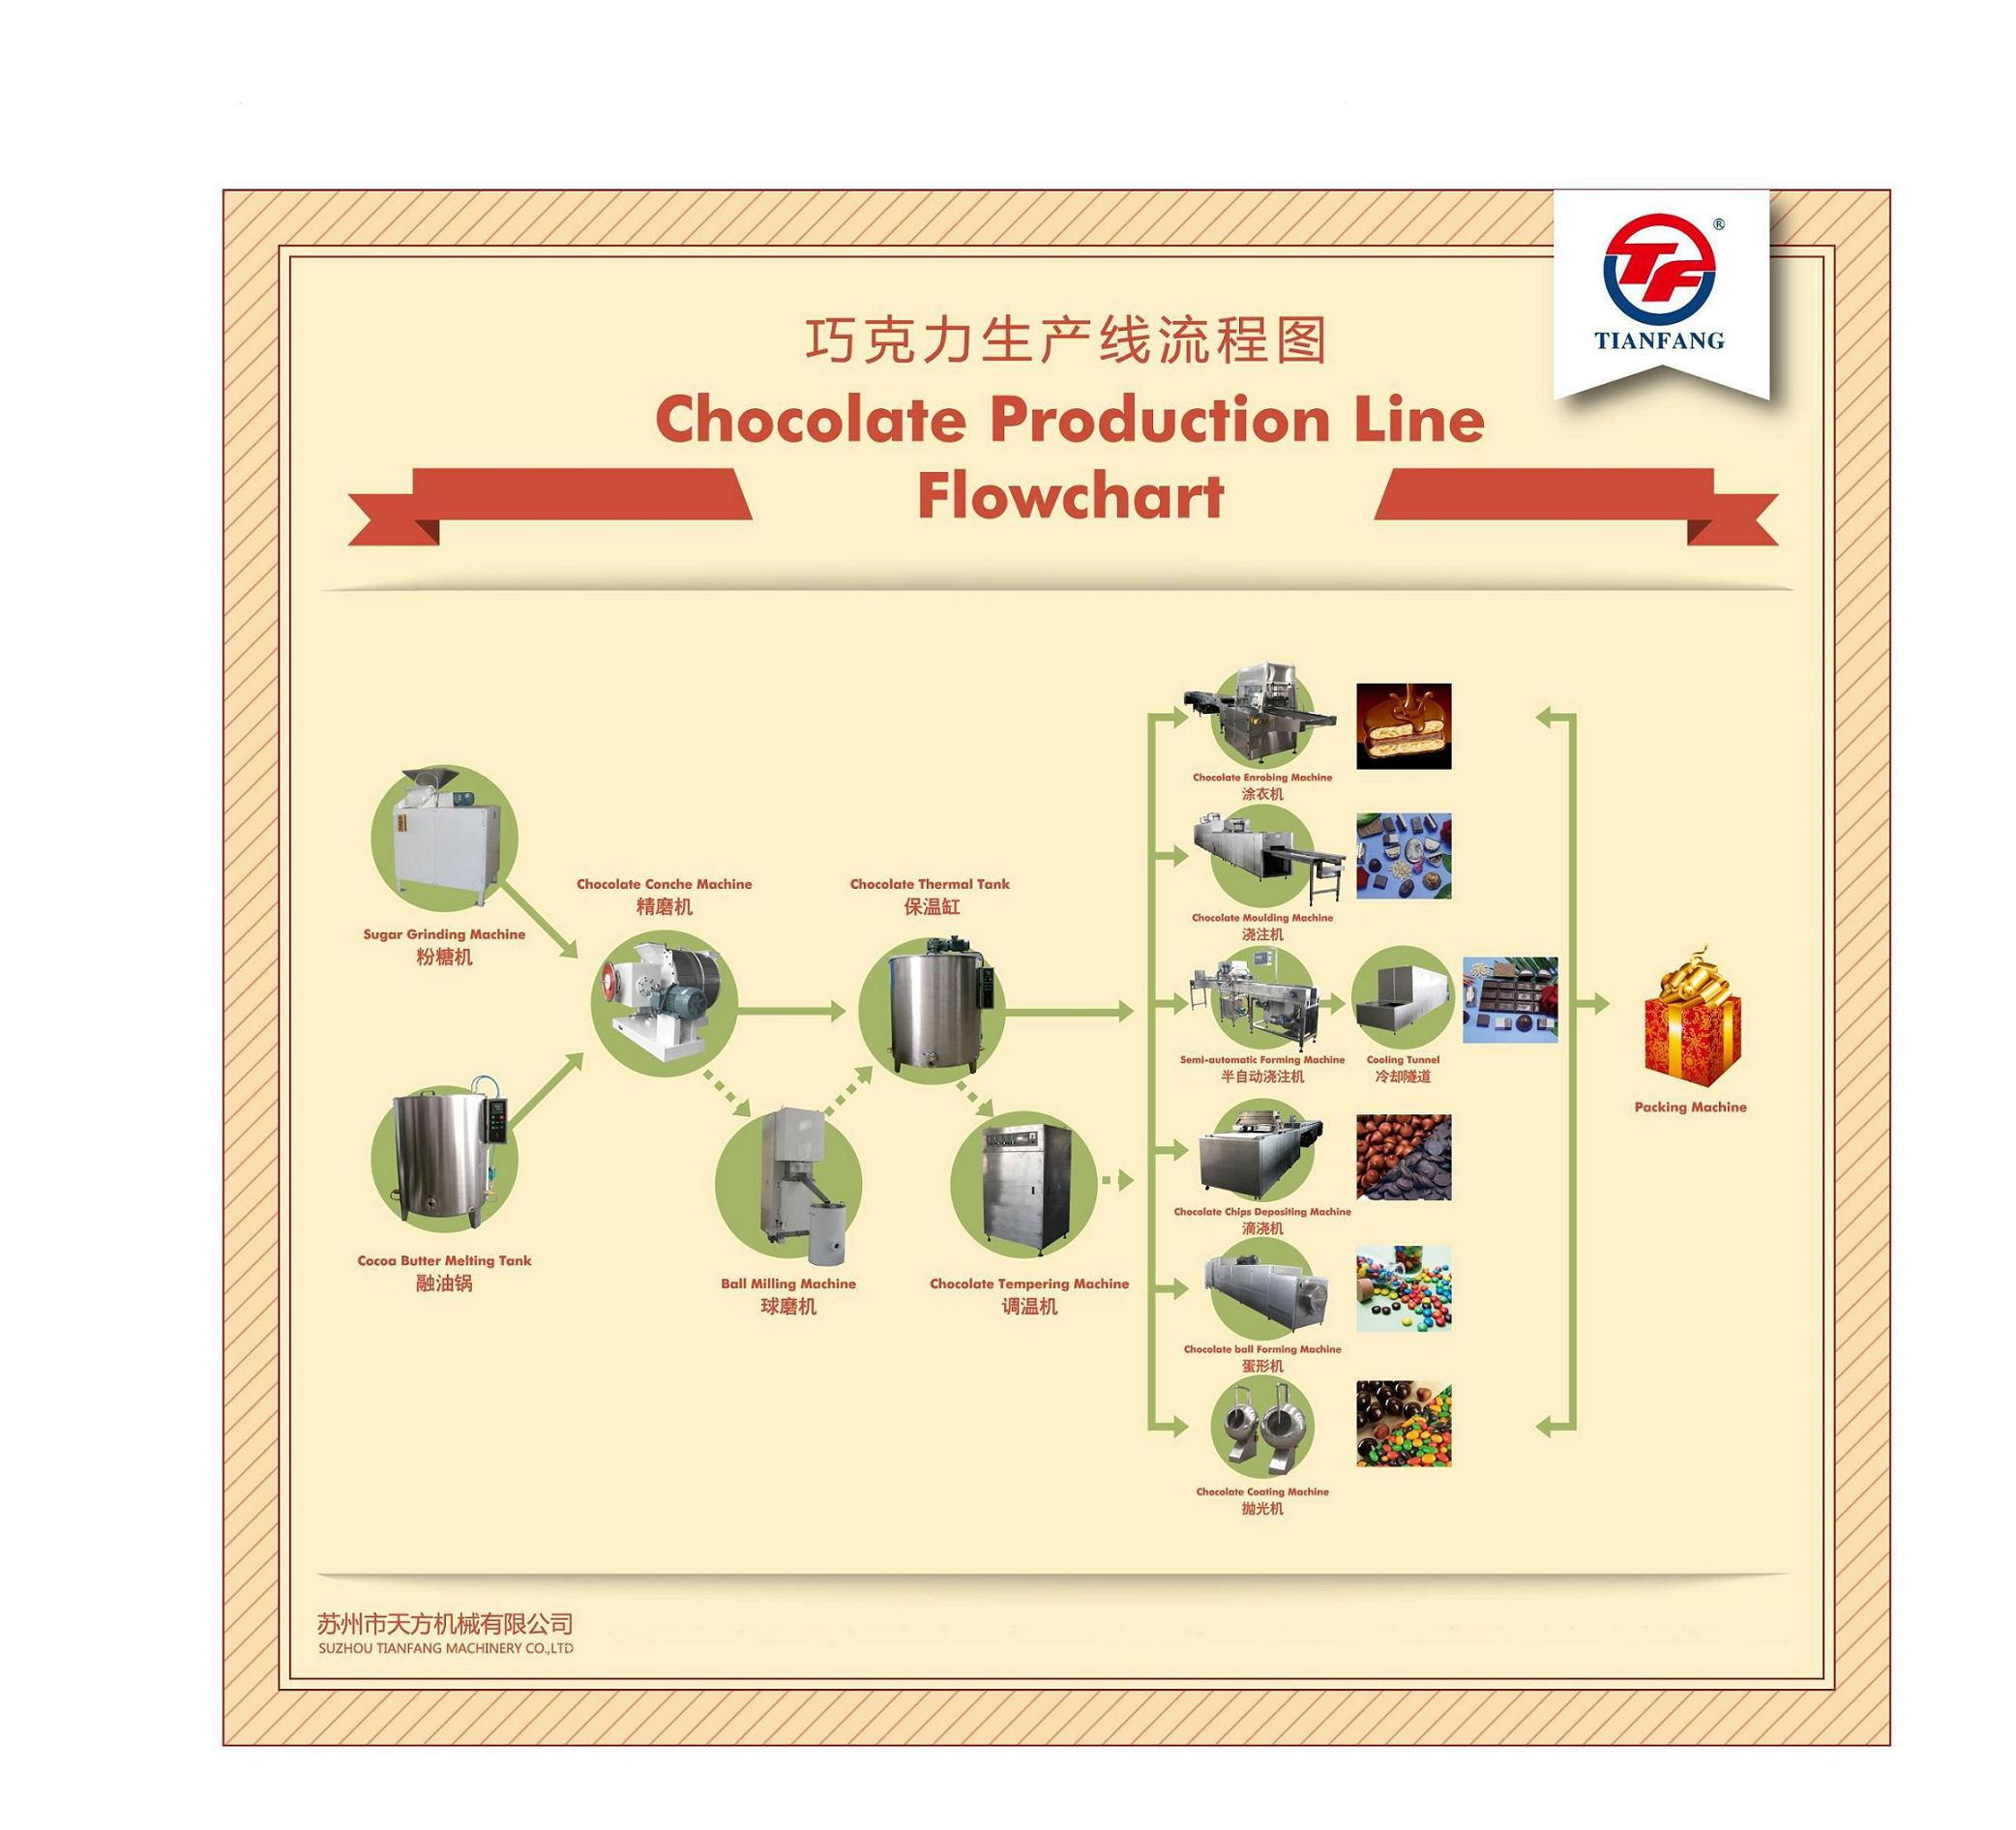 Flowchart of Chocolate Production Line